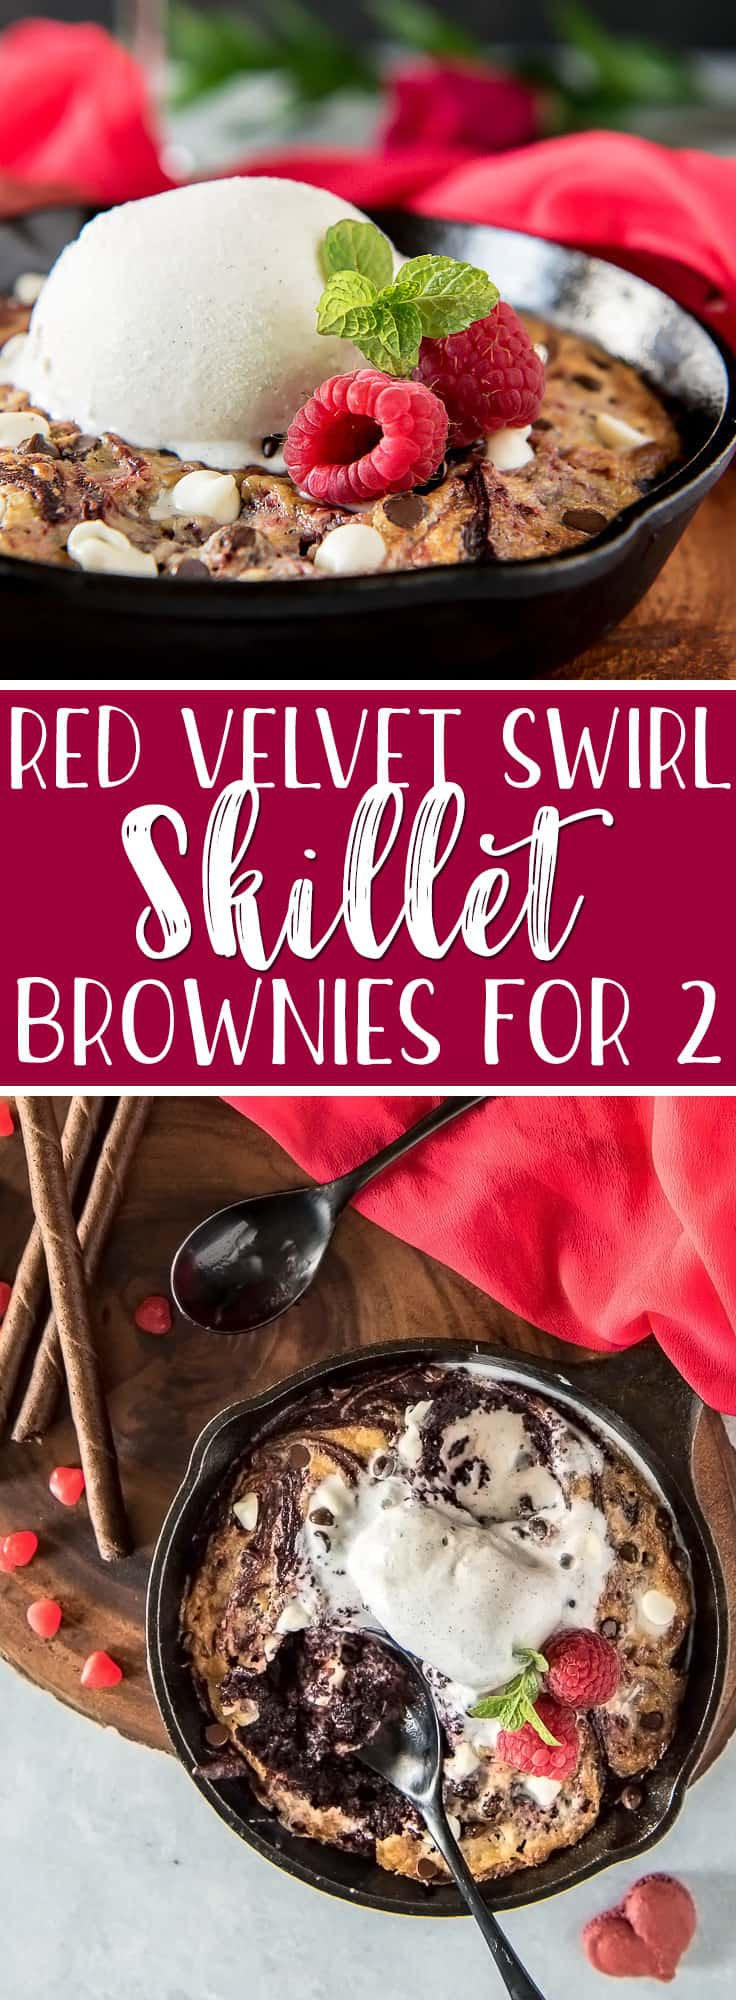 A perfectly romantic treat in a perfectly sized pan, these Red Velvet Swirl Skillet Brownies for Two should be on every special occasion menu! No box mix is required to make perfectly gooey red velvet brownies swirled with a sweetened mascarpone cheese, then studded with dark and white chocolate chips.